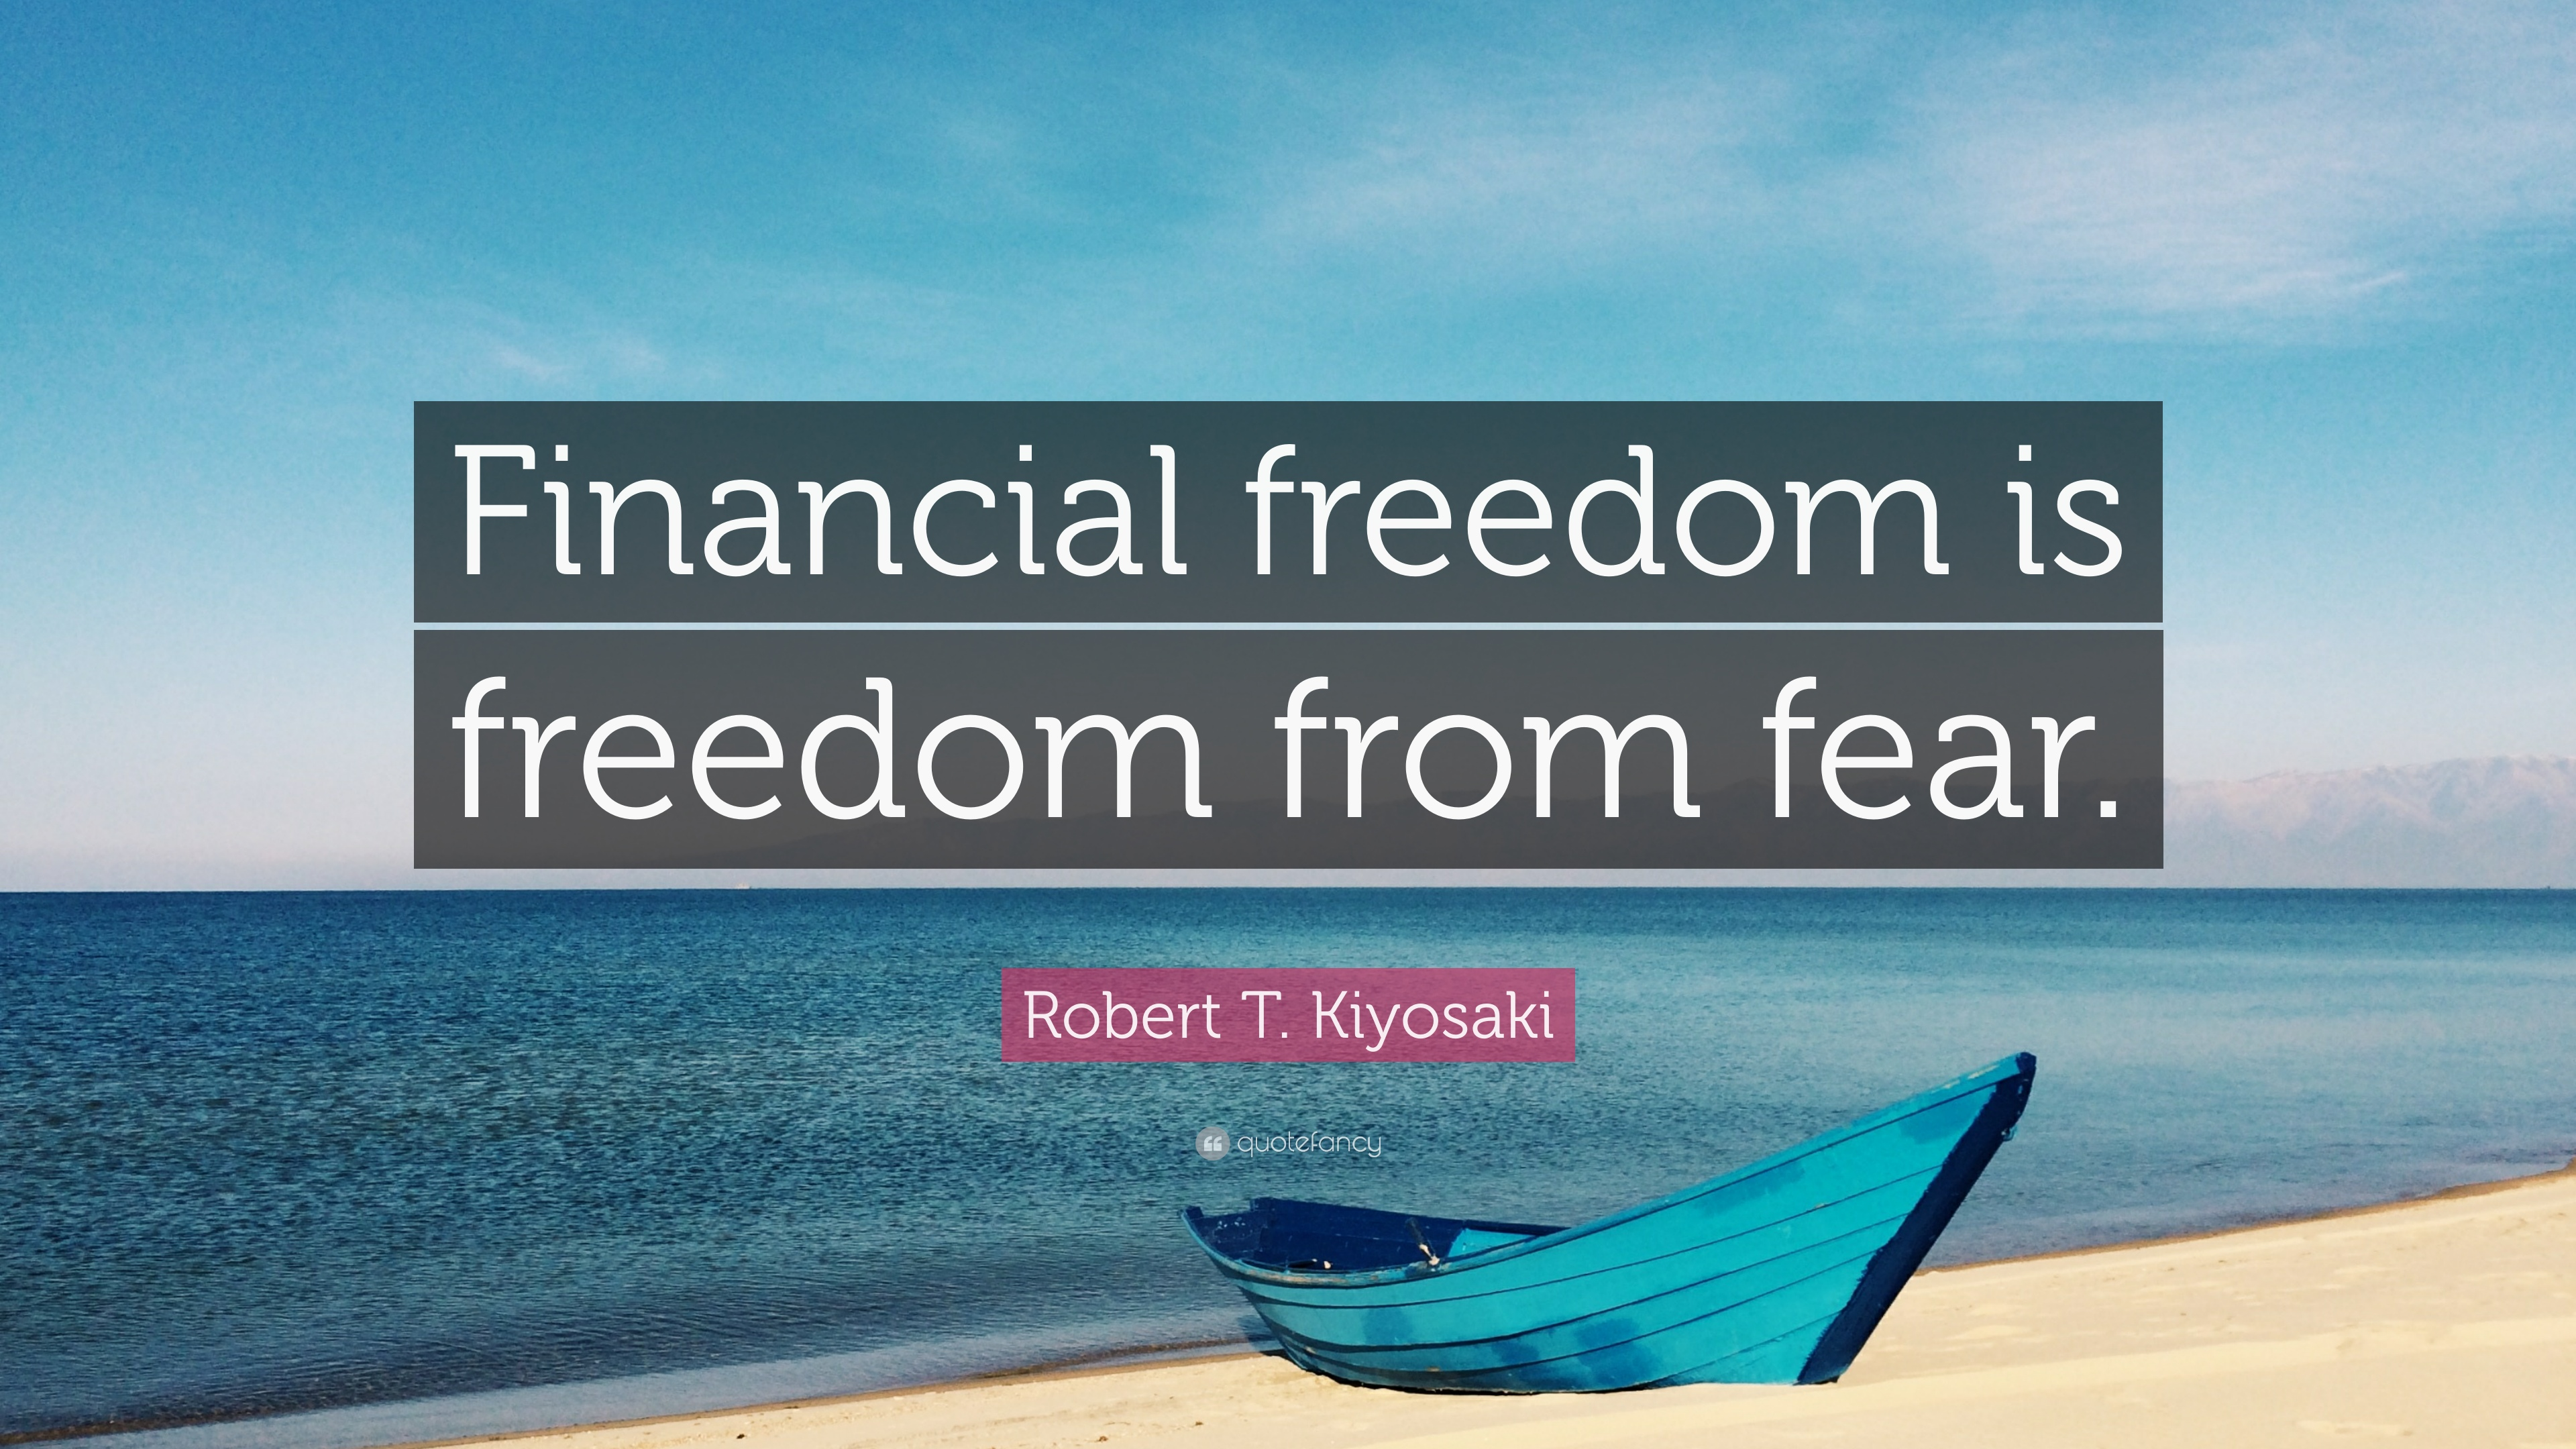 Financial Freedom Quotes Financial Freedom Quotes